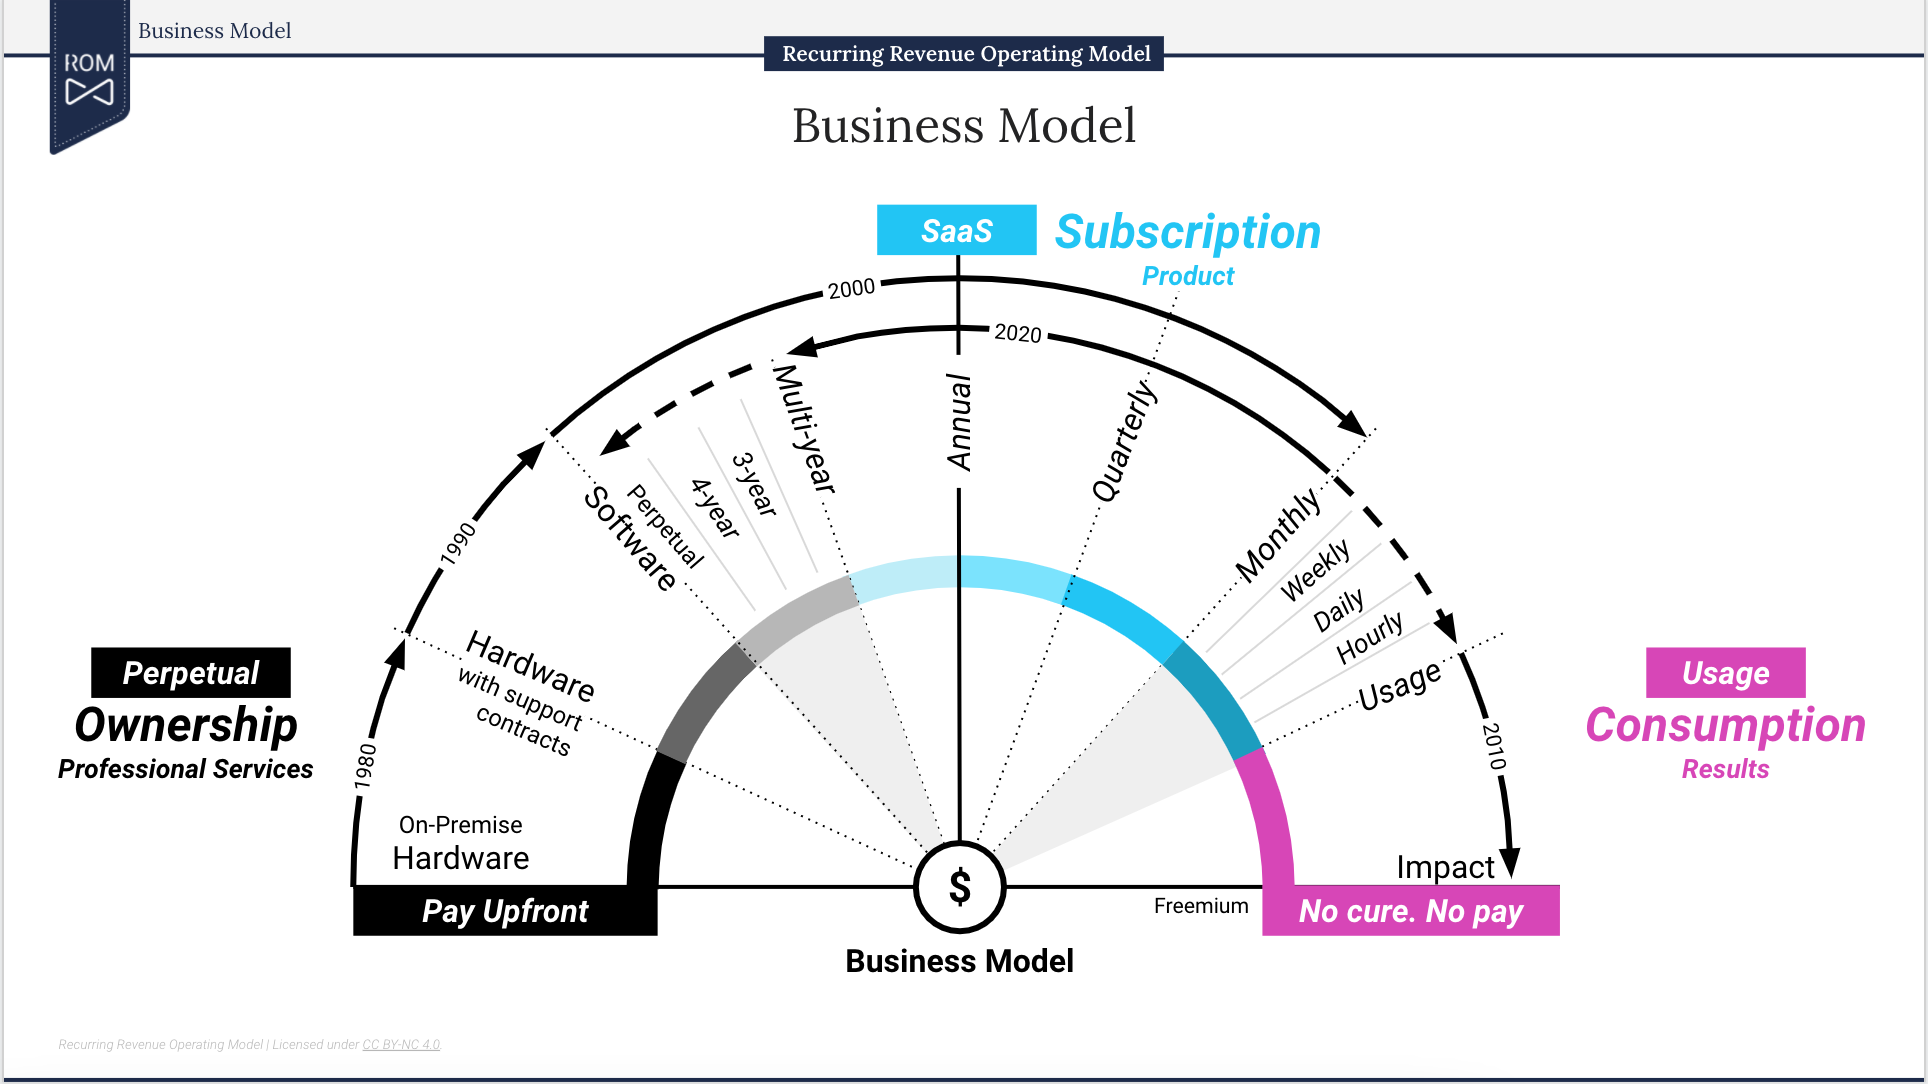 The ROM Business Model